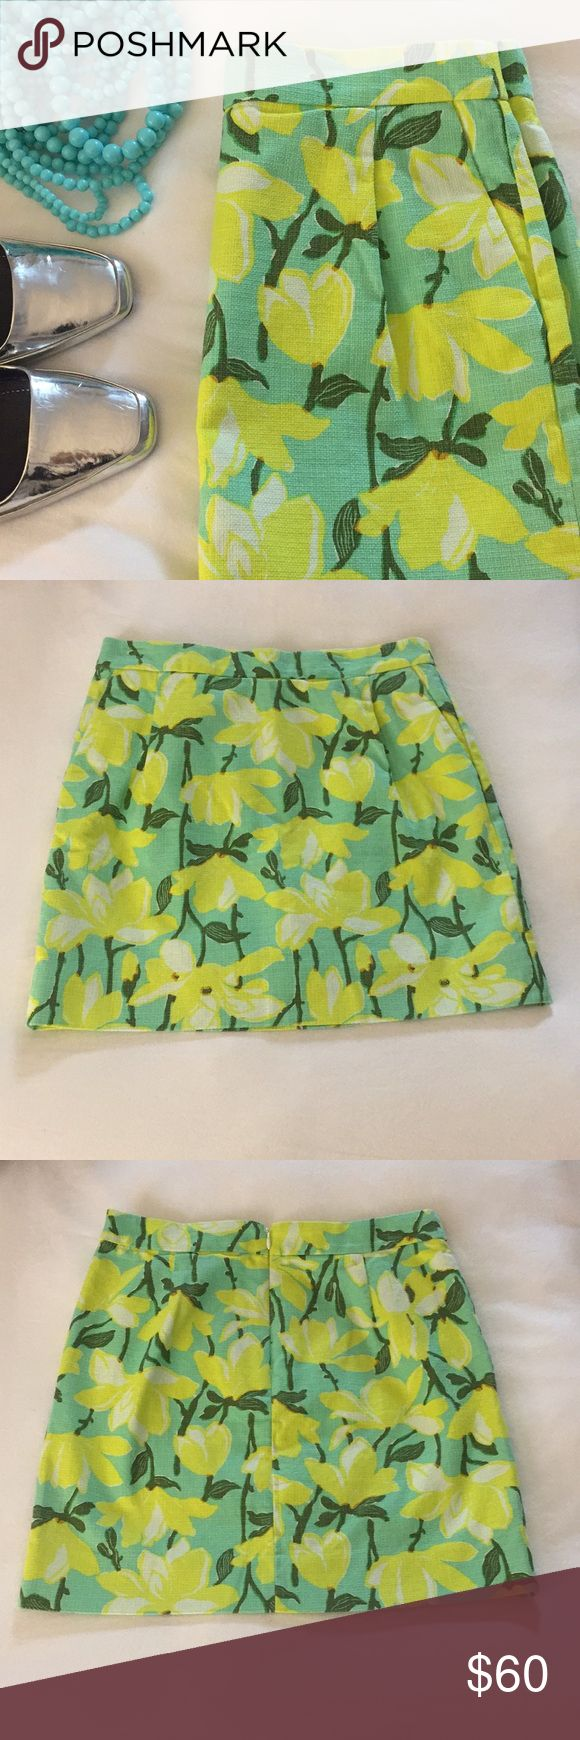 "❤️Sale! J Crew skirt NWOT J Crew floral skirt with beautiful colors of lemon/almost neon yellow and mint green background with leafy green stems. Material is 100% cotton and fully lined with pockets that have yet to be cut. The waist measures 14.5"" flat across, and is almost 17"" long. Perfect for spring summer! J. Crew Skirts"